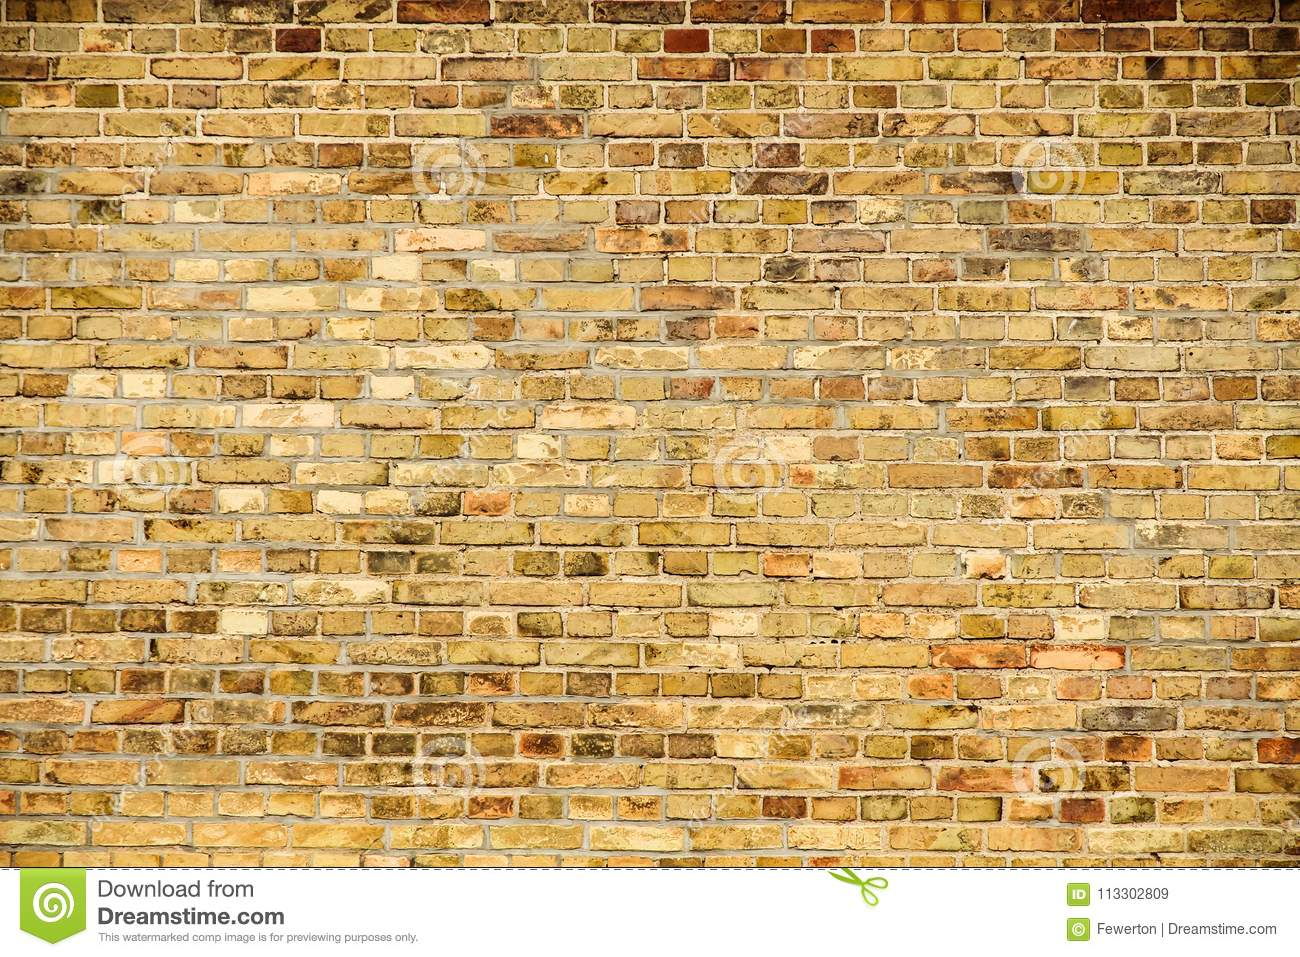 Old and weathered grungy yellow and red brick wall as seamless pattern texture wall background